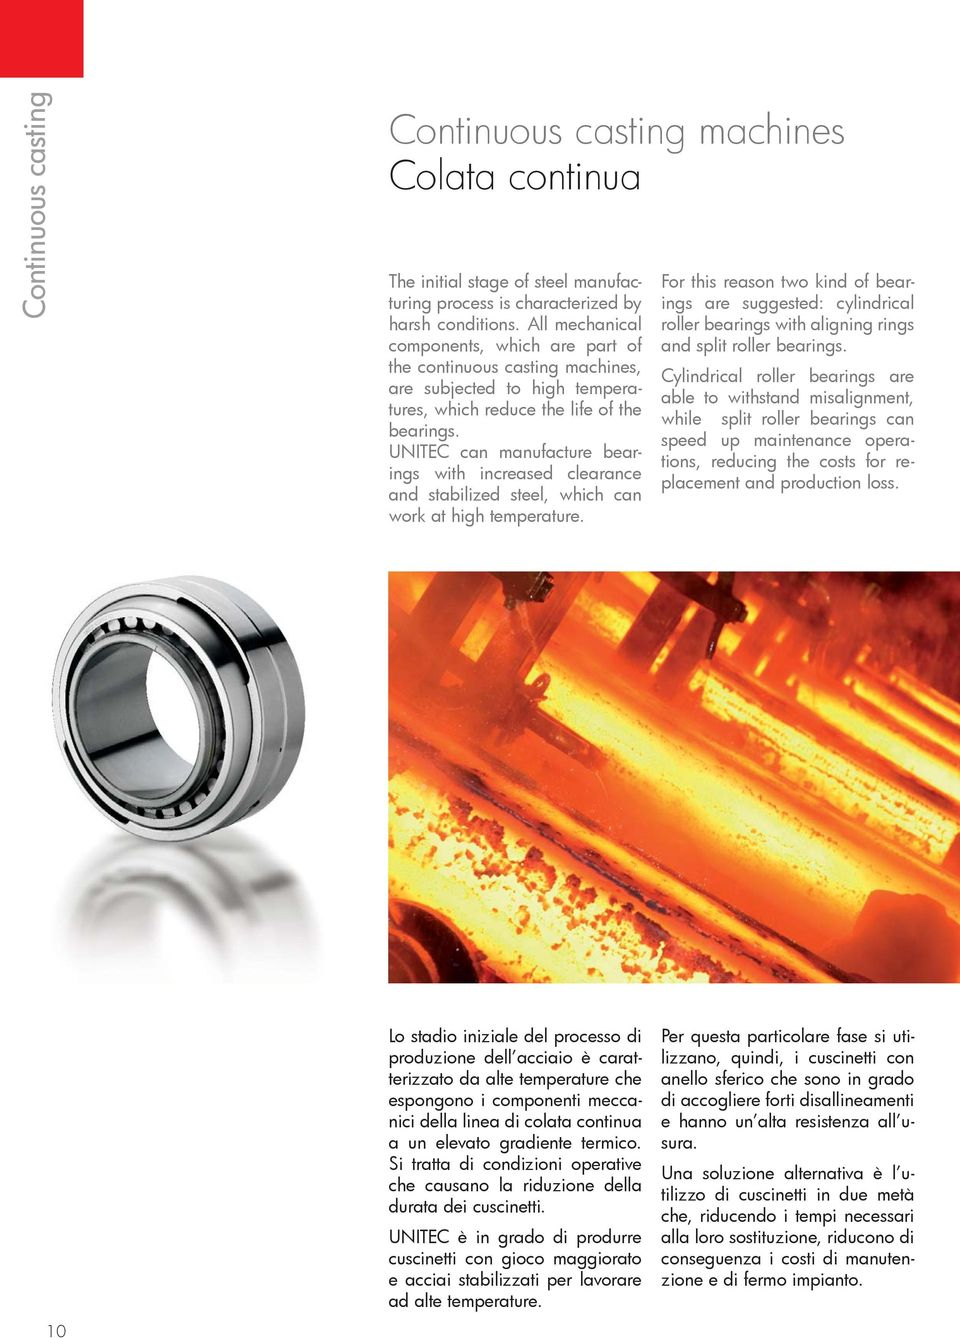 UNITEC can manufacture bearings with increased clearance and stabilized steel, which can work at high temperature.